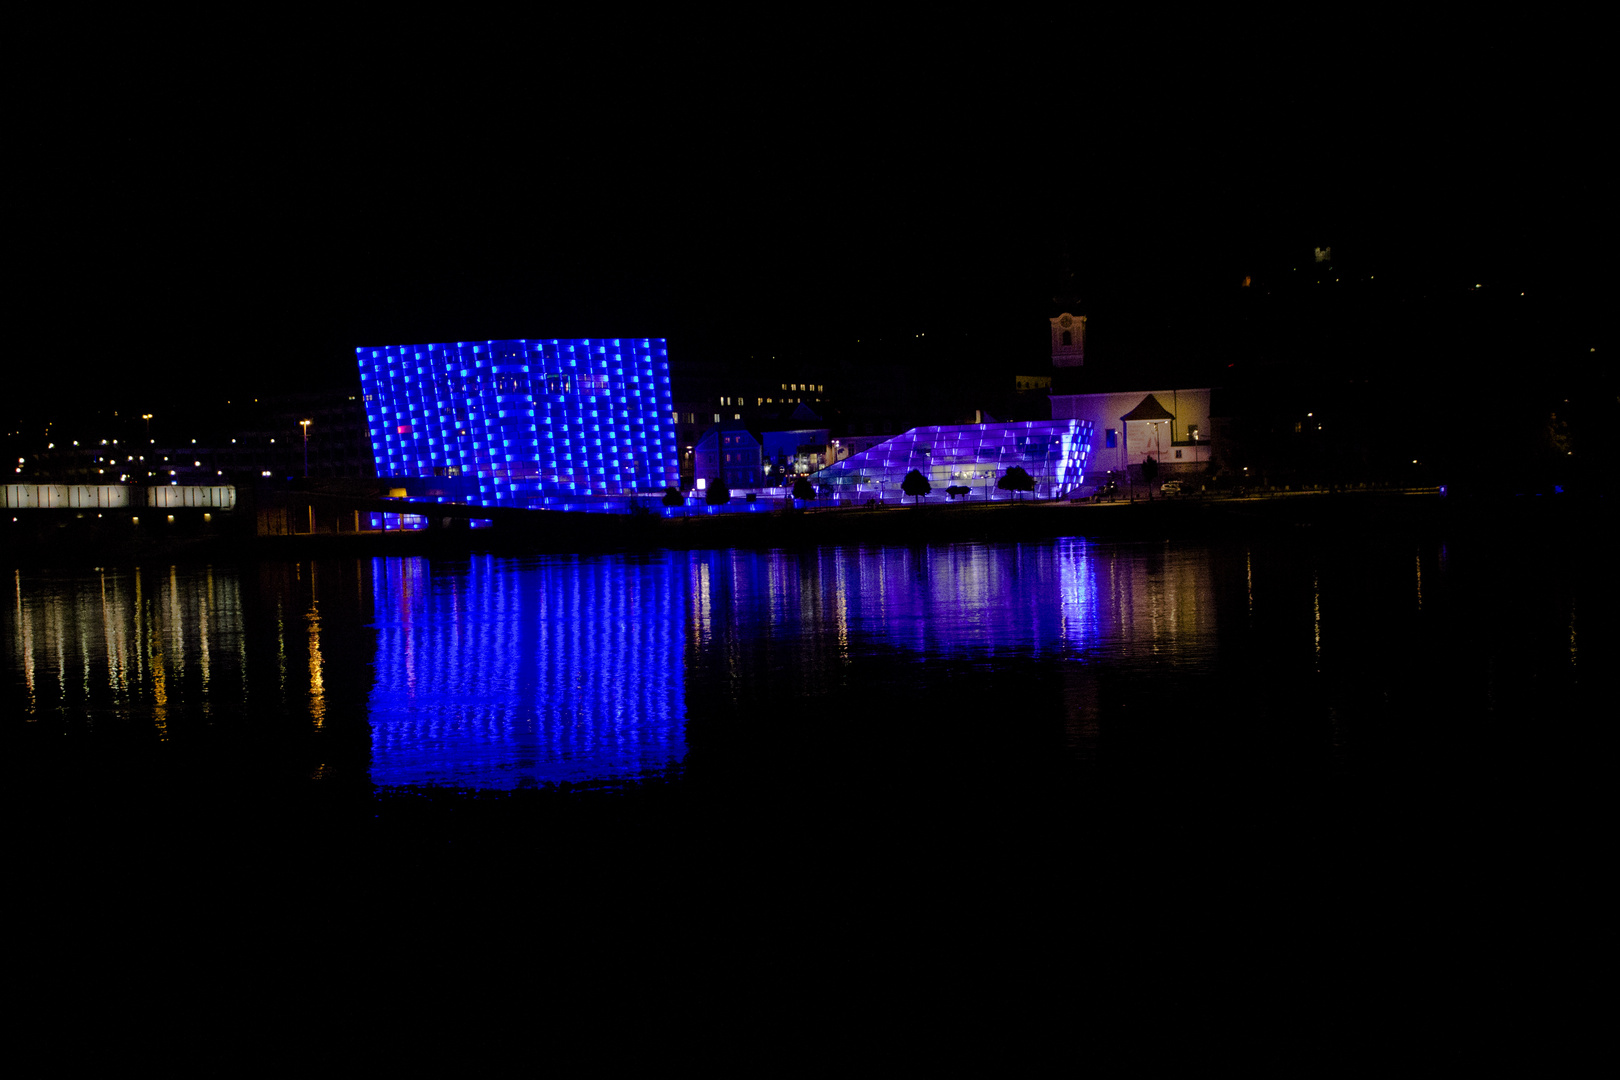 ARS Electronica Night